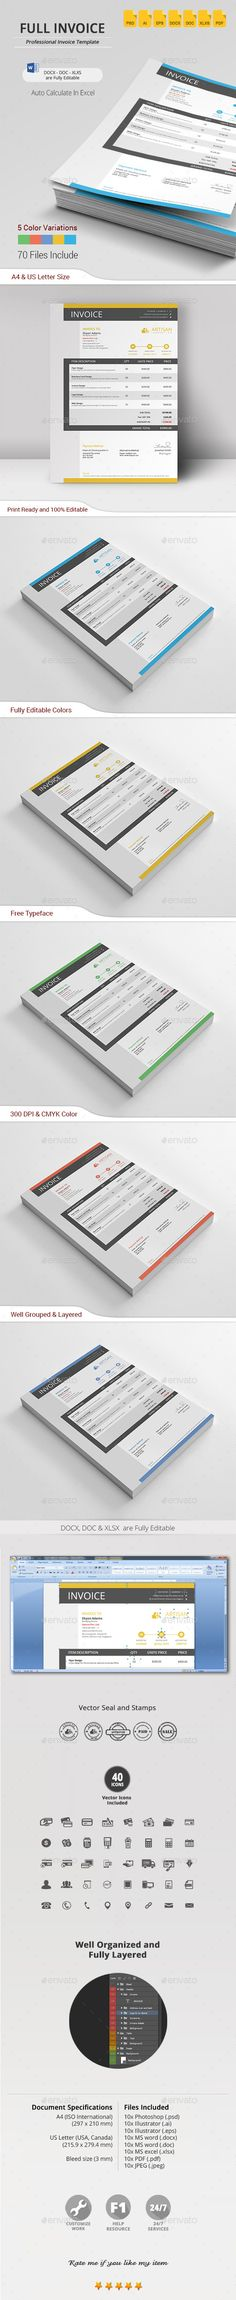 Invoice Psd Templates, Photoshop and Bill Ou0027brien - print an invoice